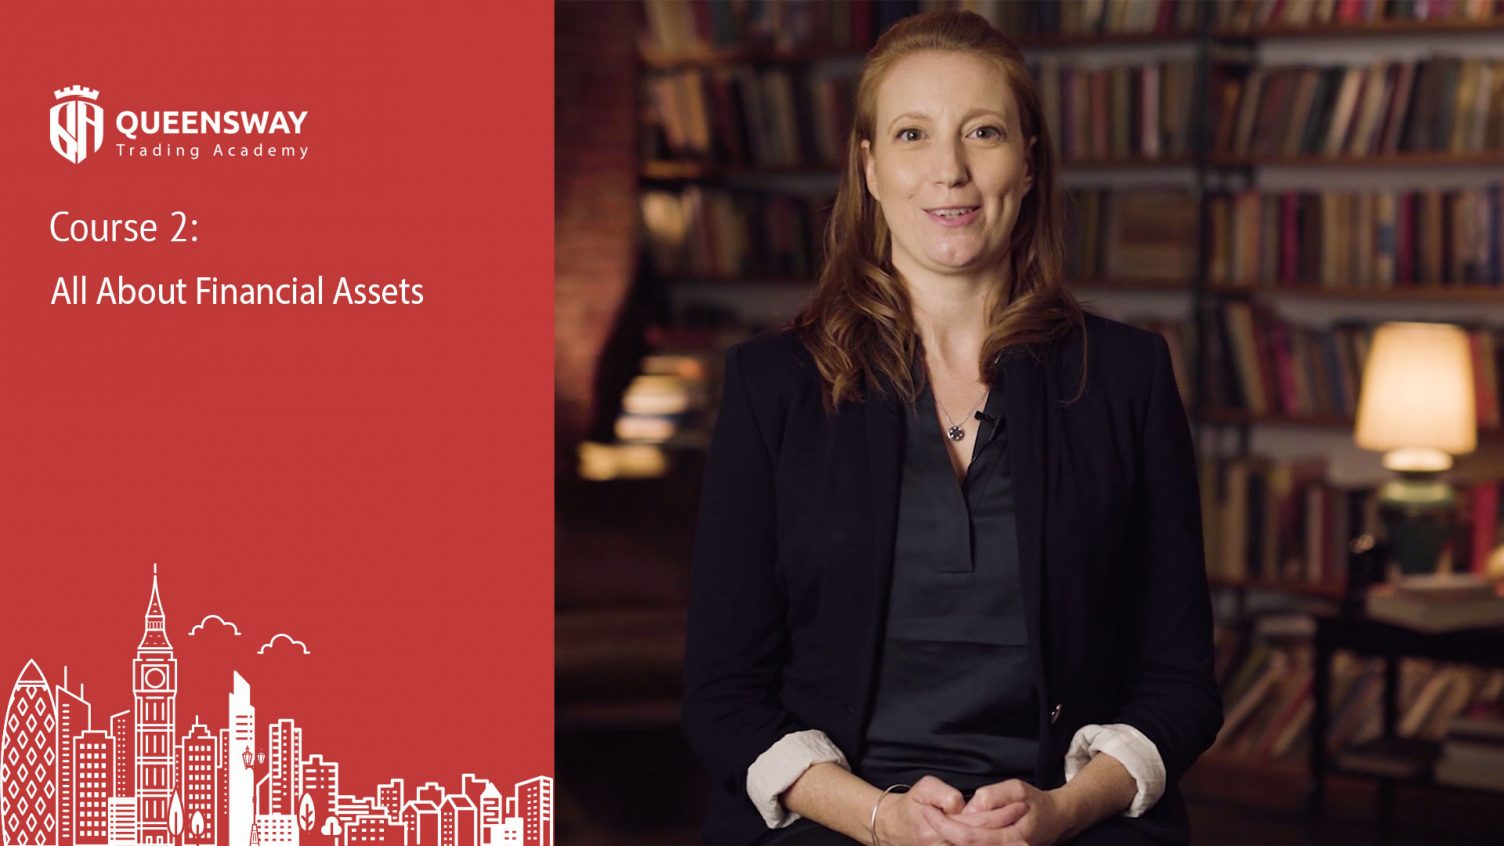 All About Financial Assets